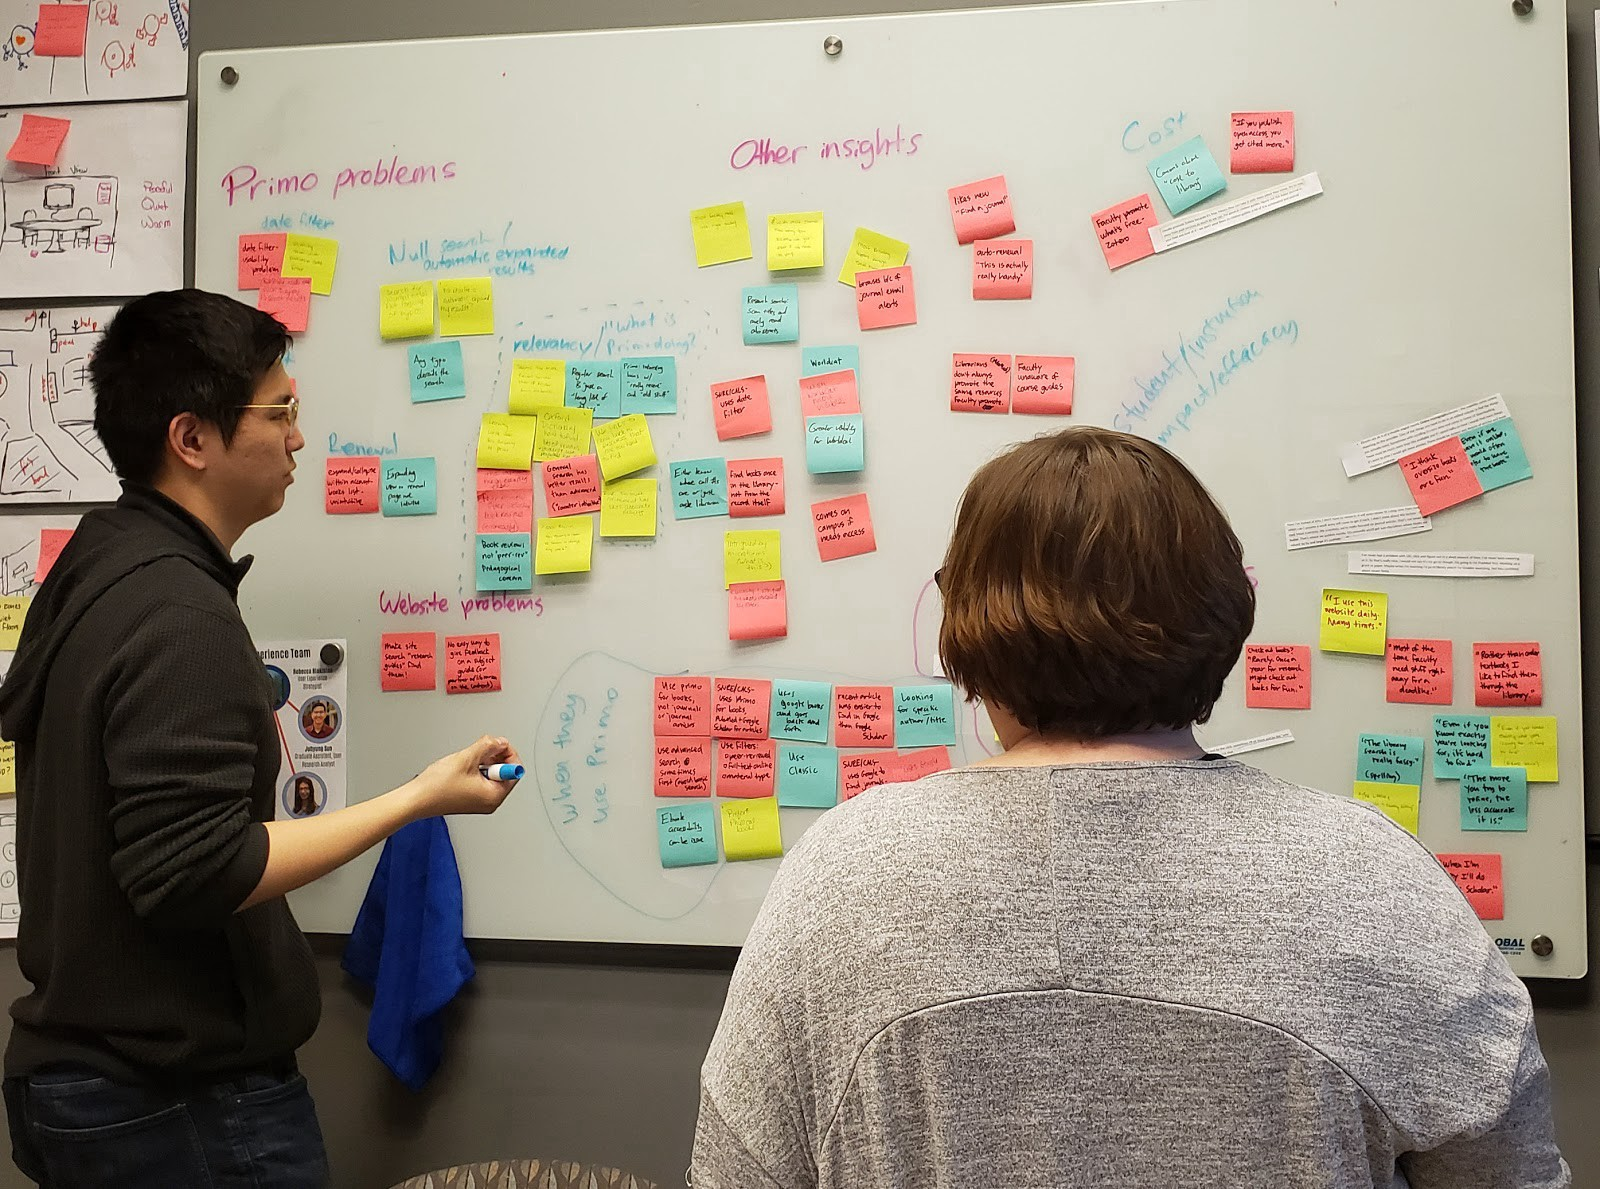 Two people standing in front of a white board with a bunch of sticky notes